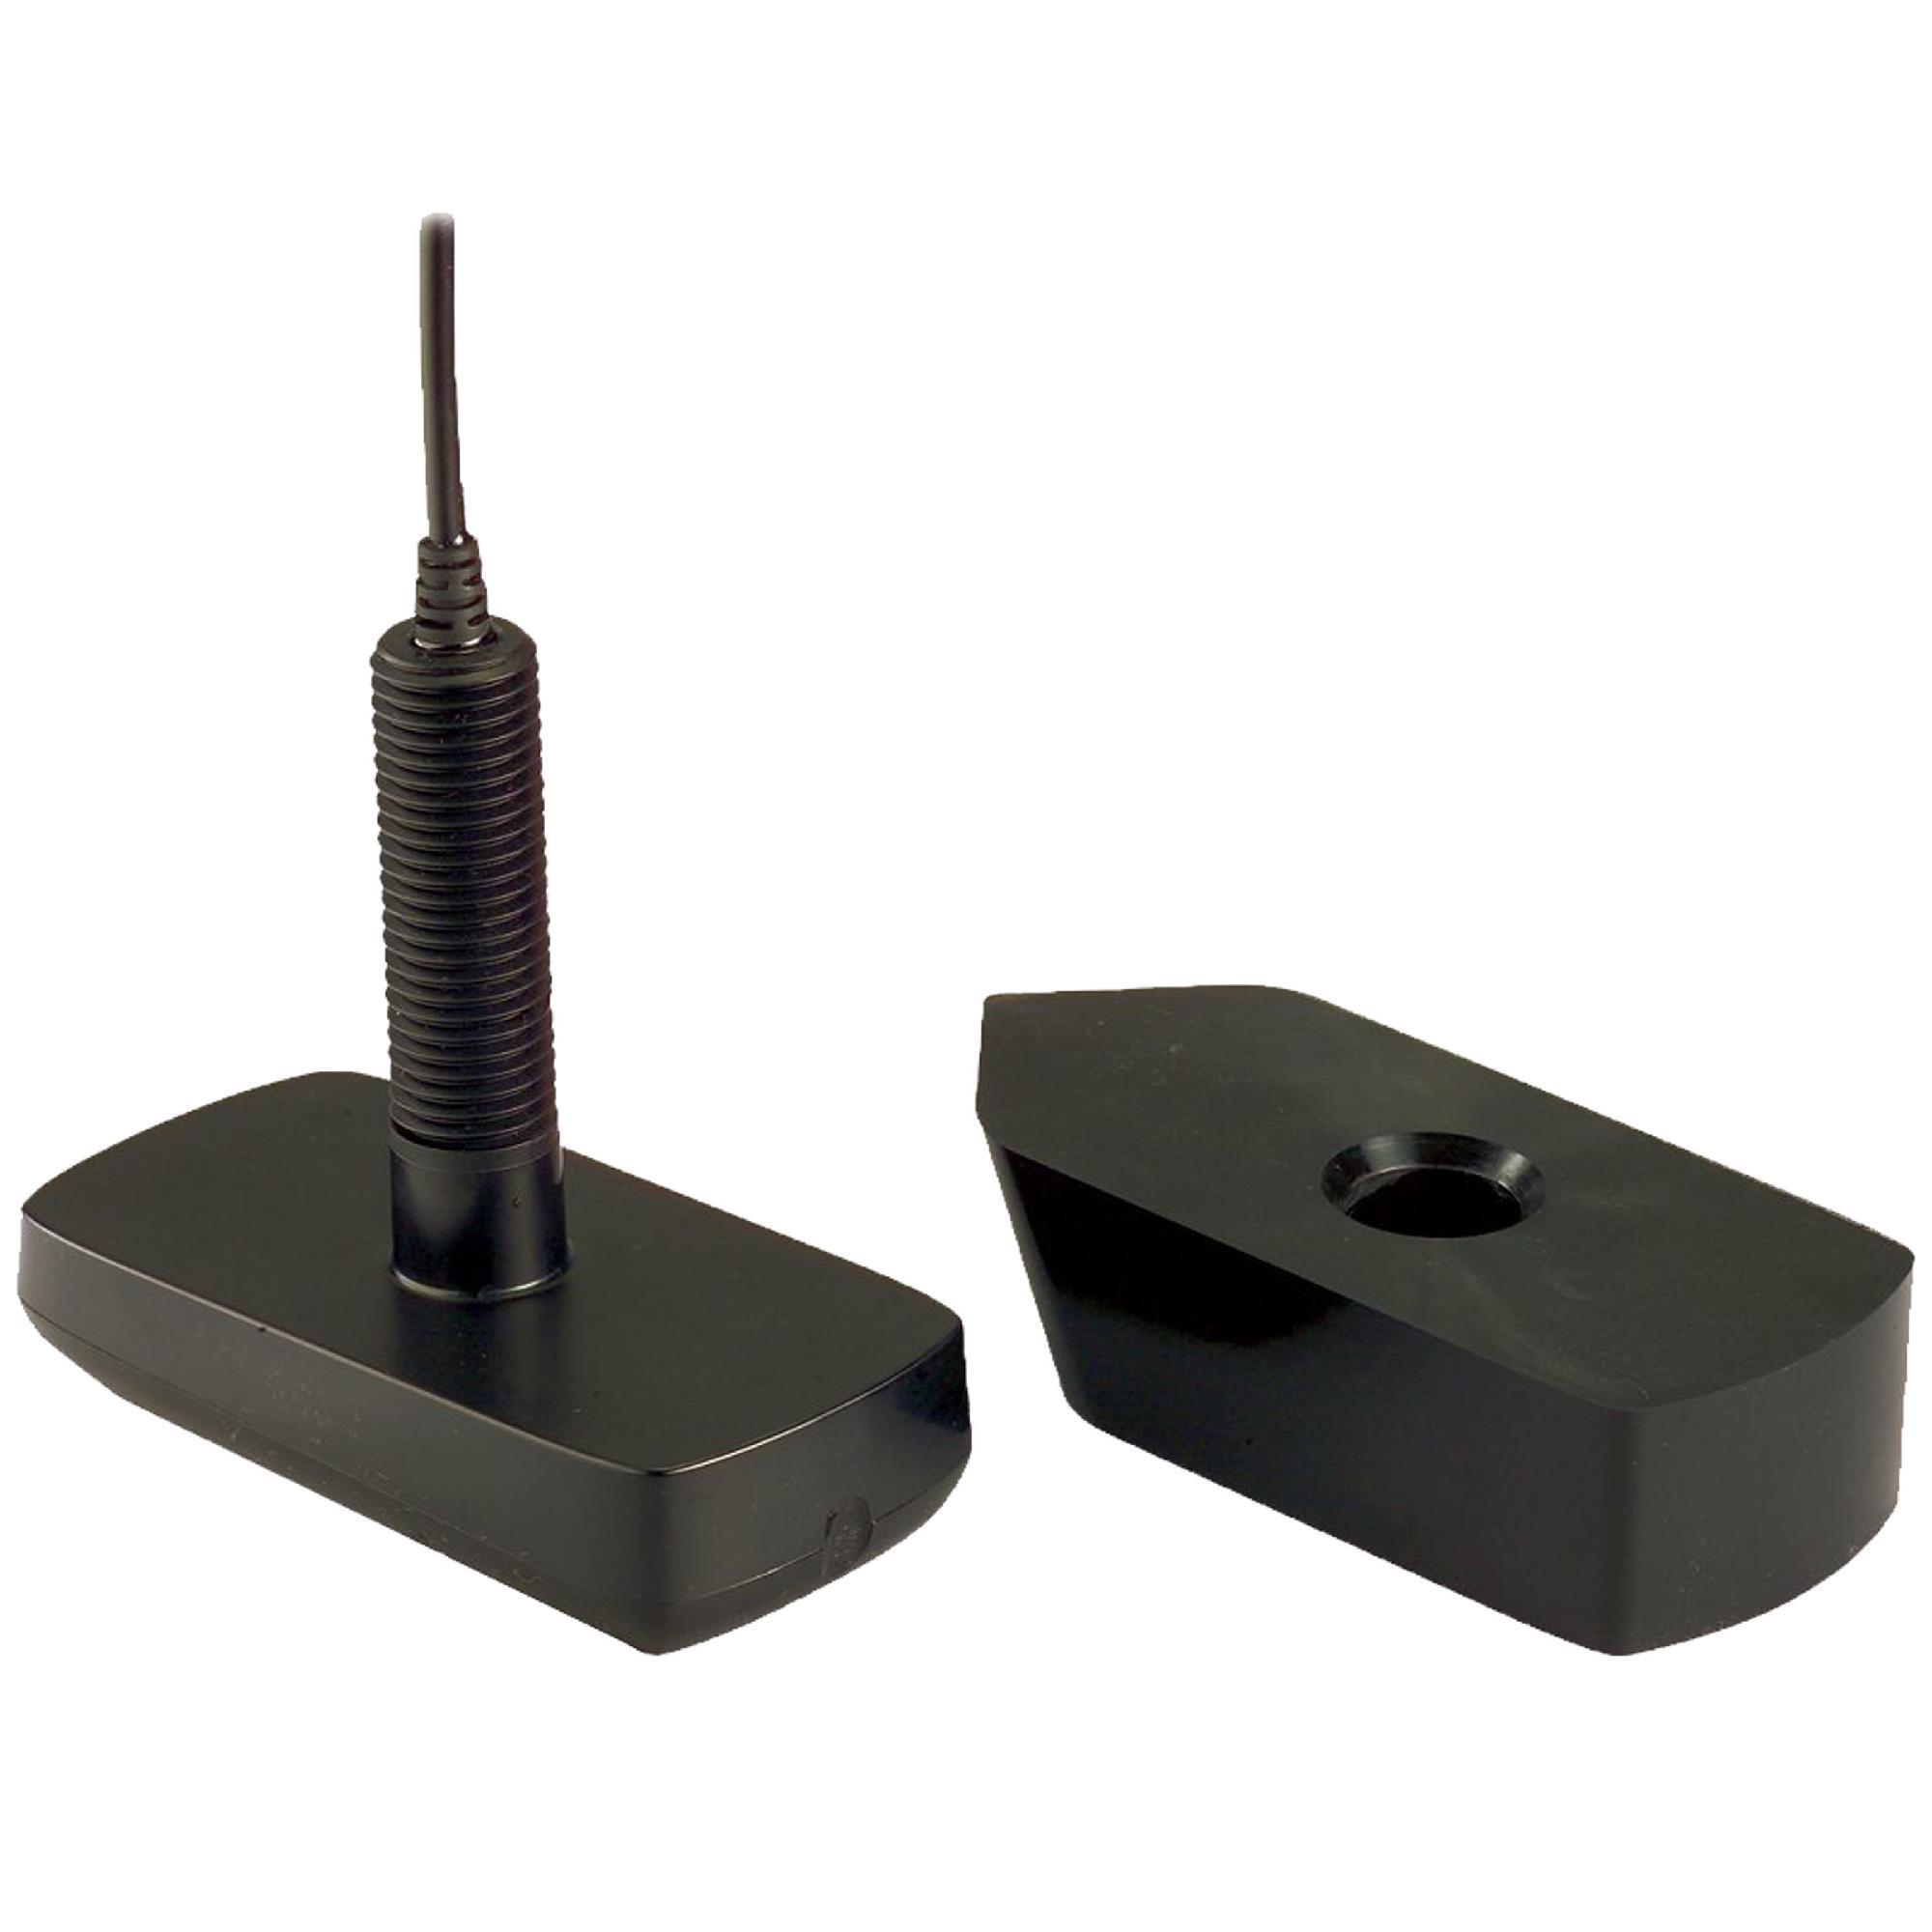 XPTH 14 - 74 HDSI T Transducer | Products | Fish finder